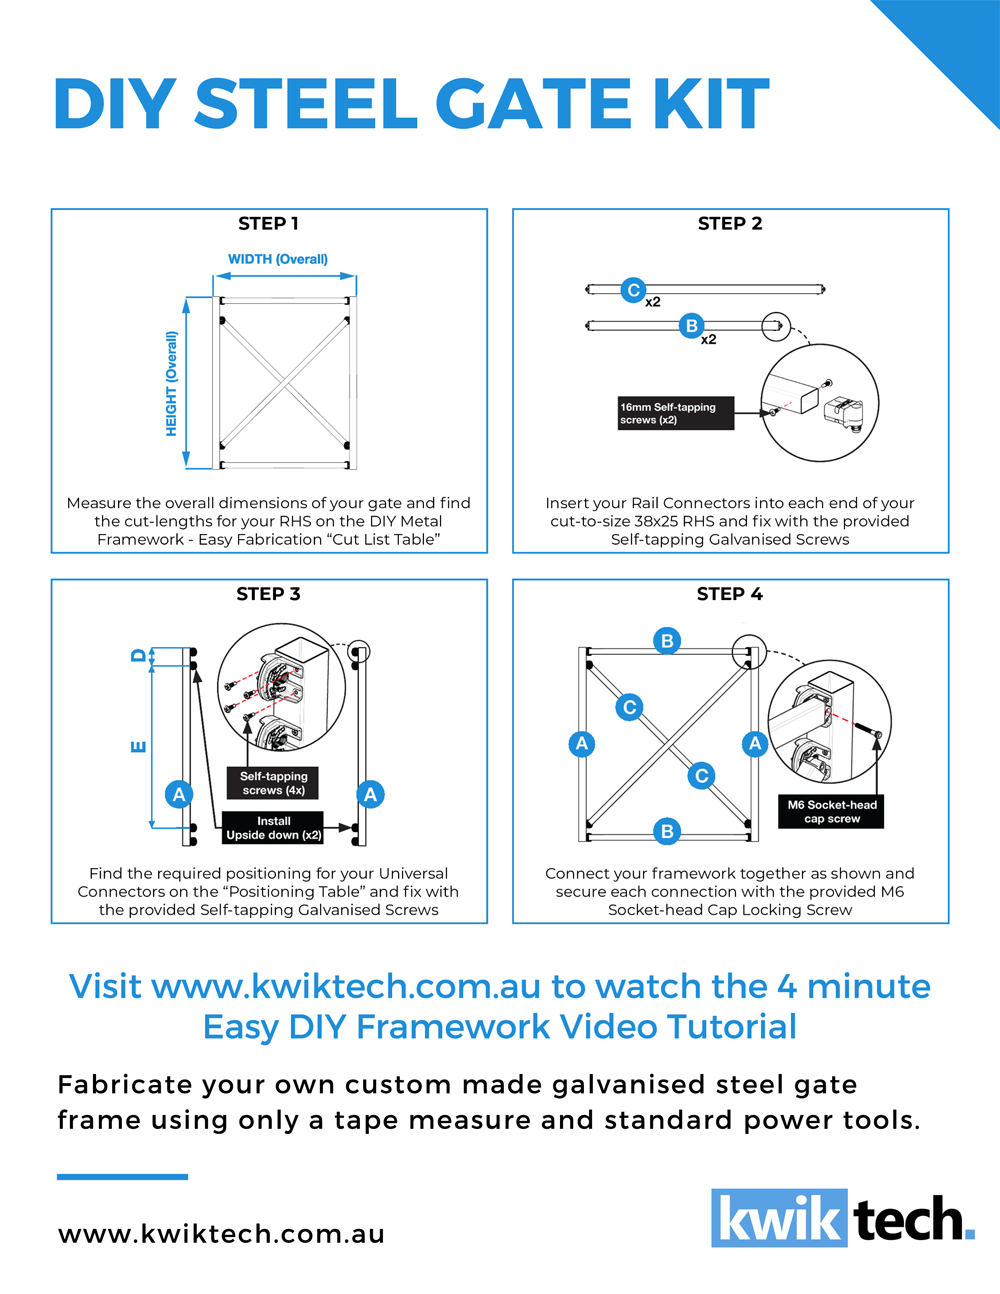 kwiktech-diy-gate-kit-flyer-2